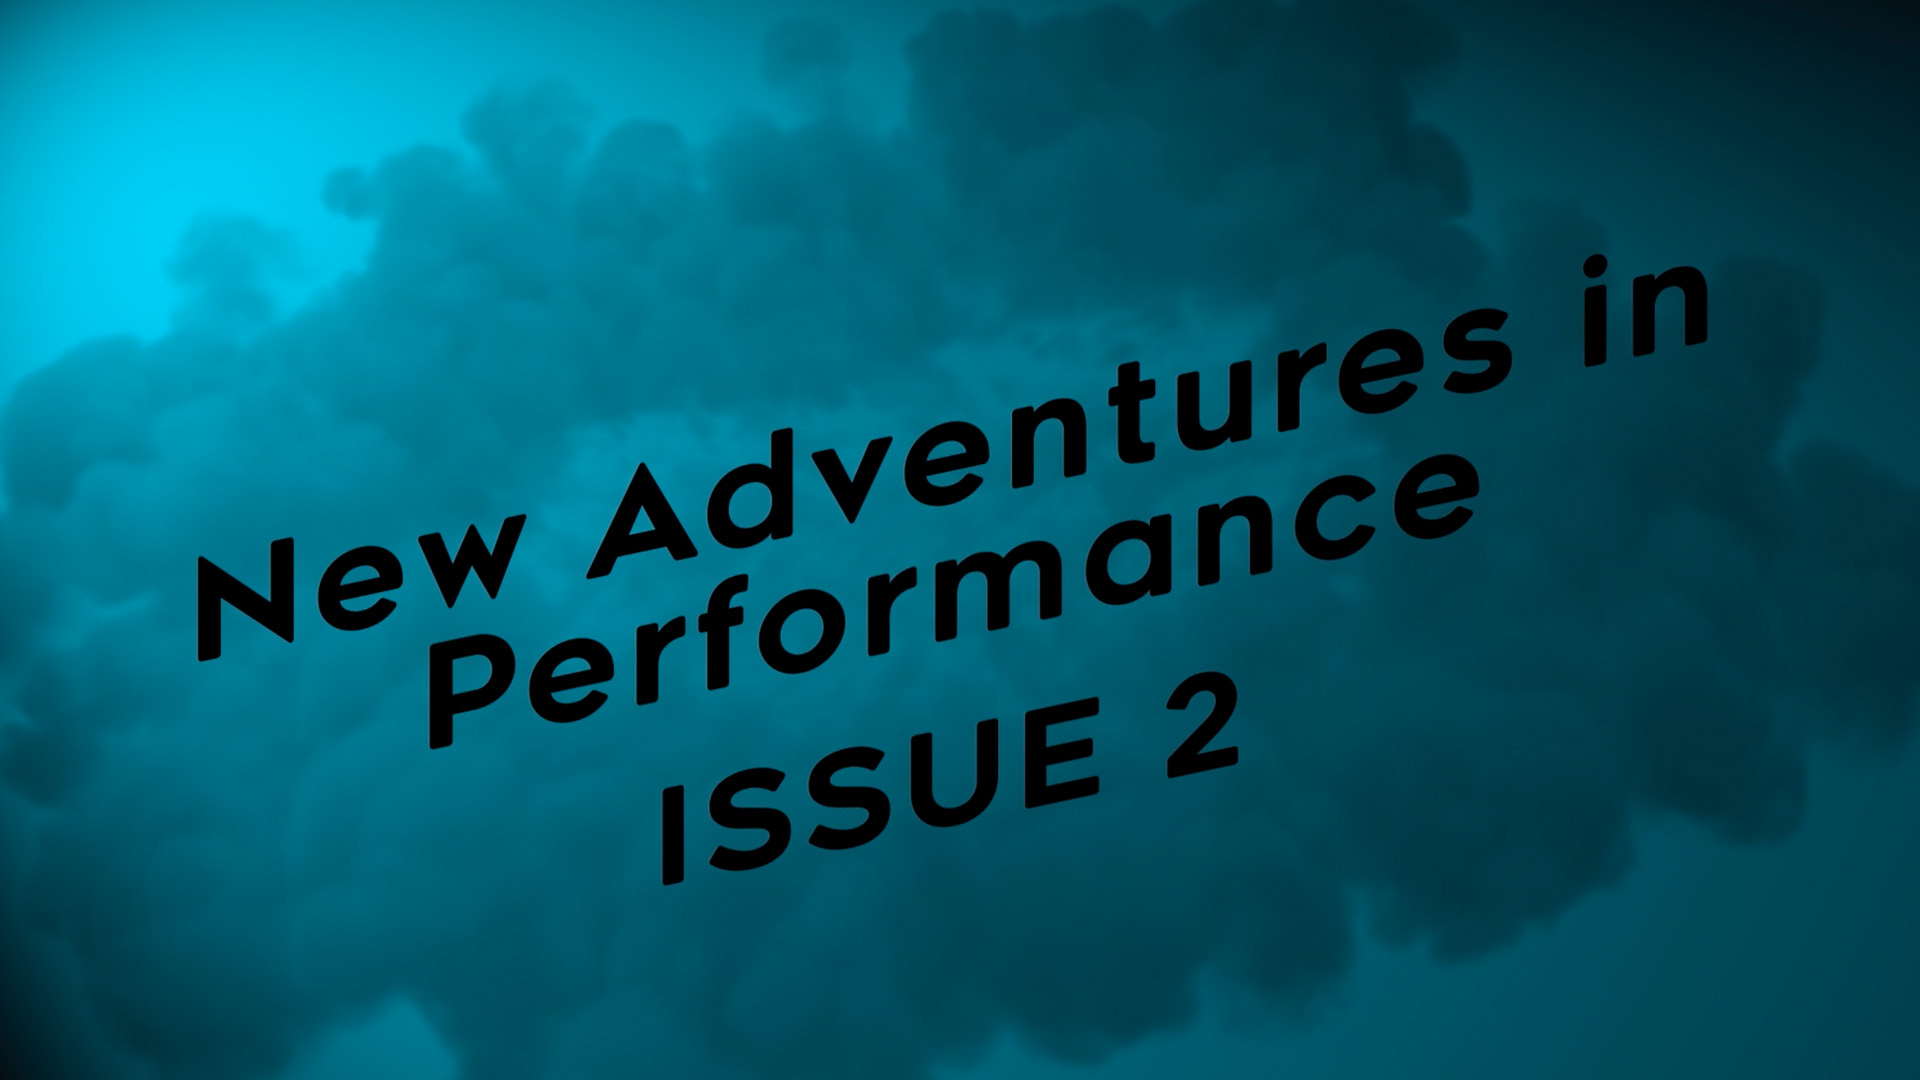 New Adventures in Performance - Issue 2 - July 2019